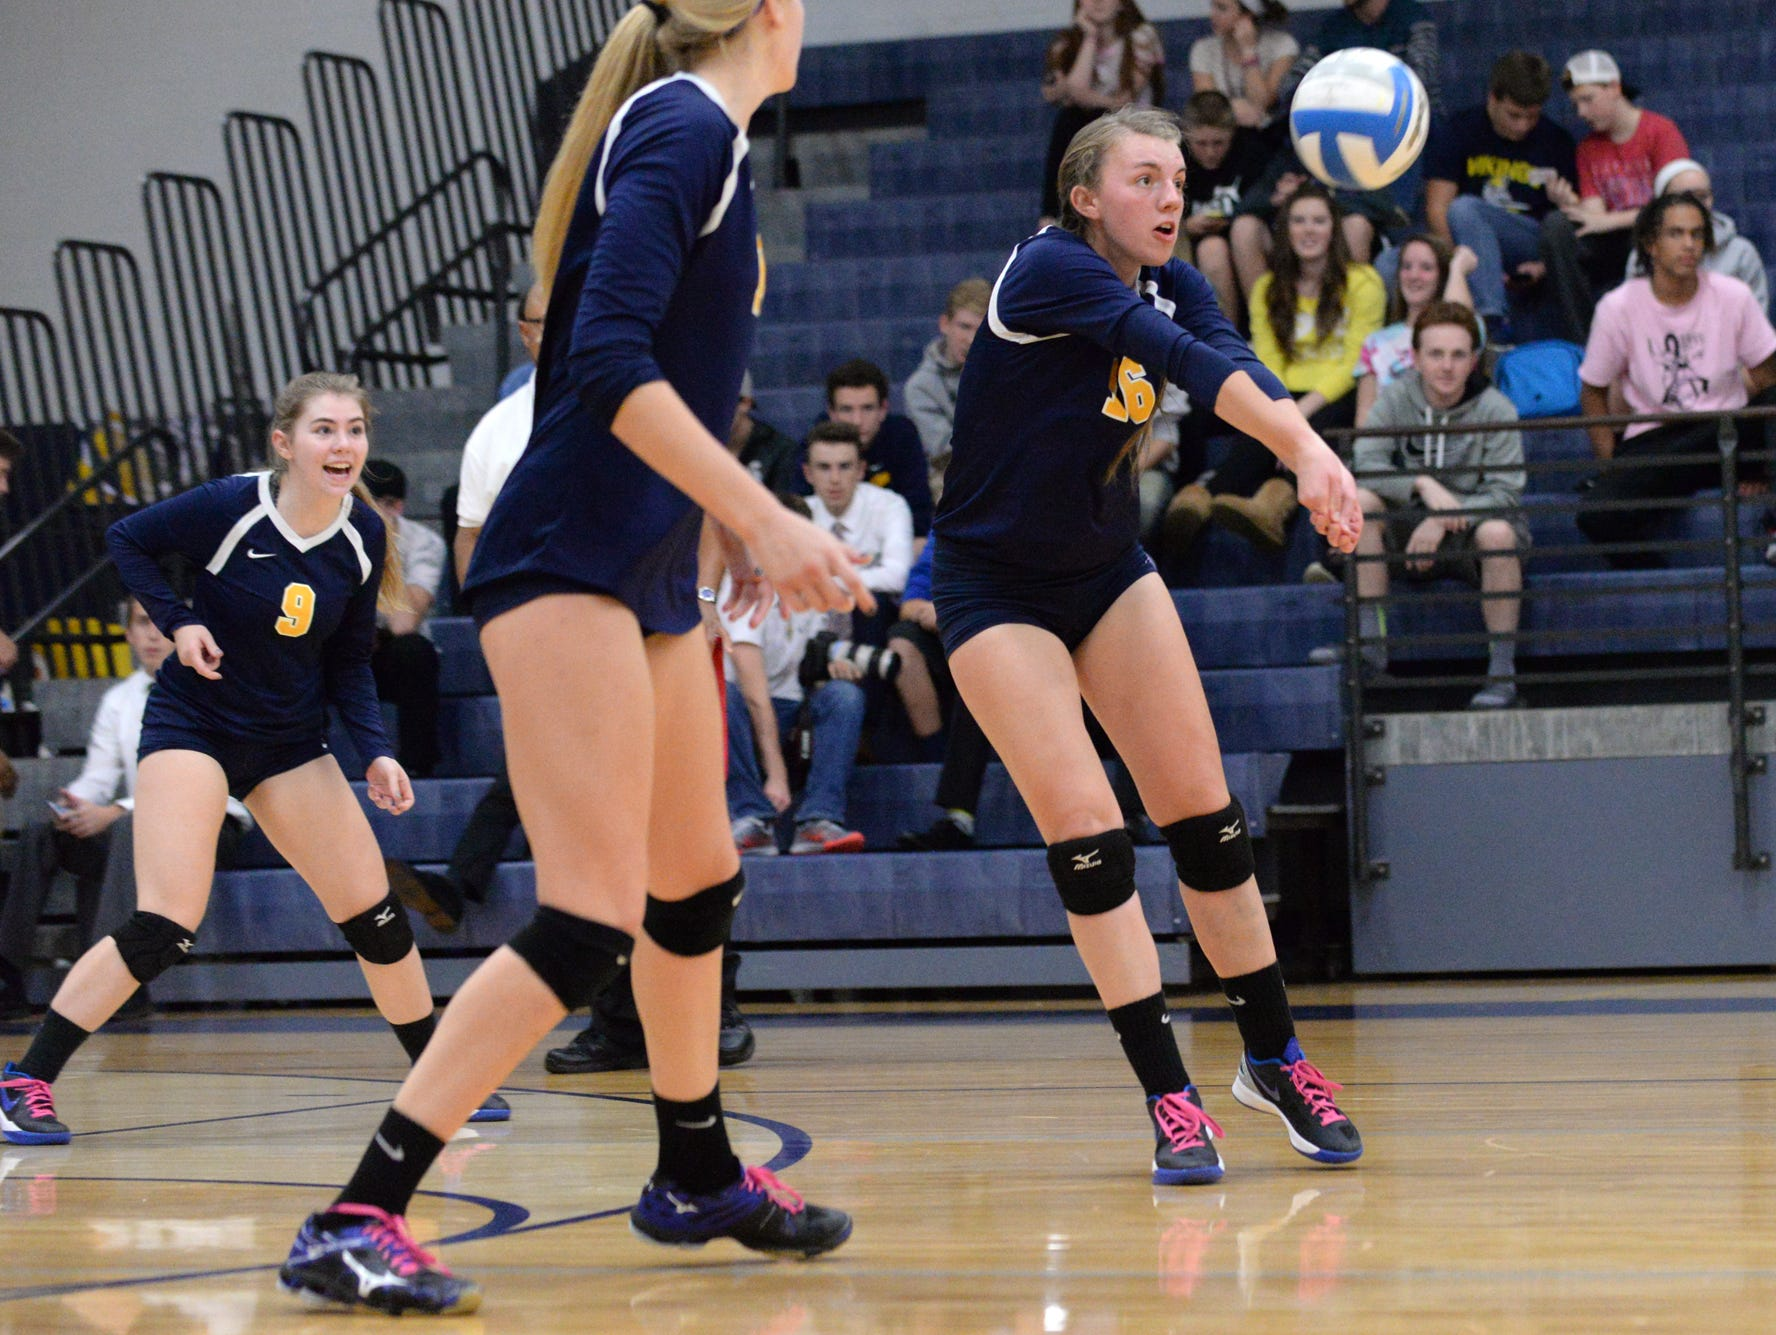 Haslett's Abby Boss bumps the ball during the Class B Volleyball District Tournament against Williamston at Haslett High School.